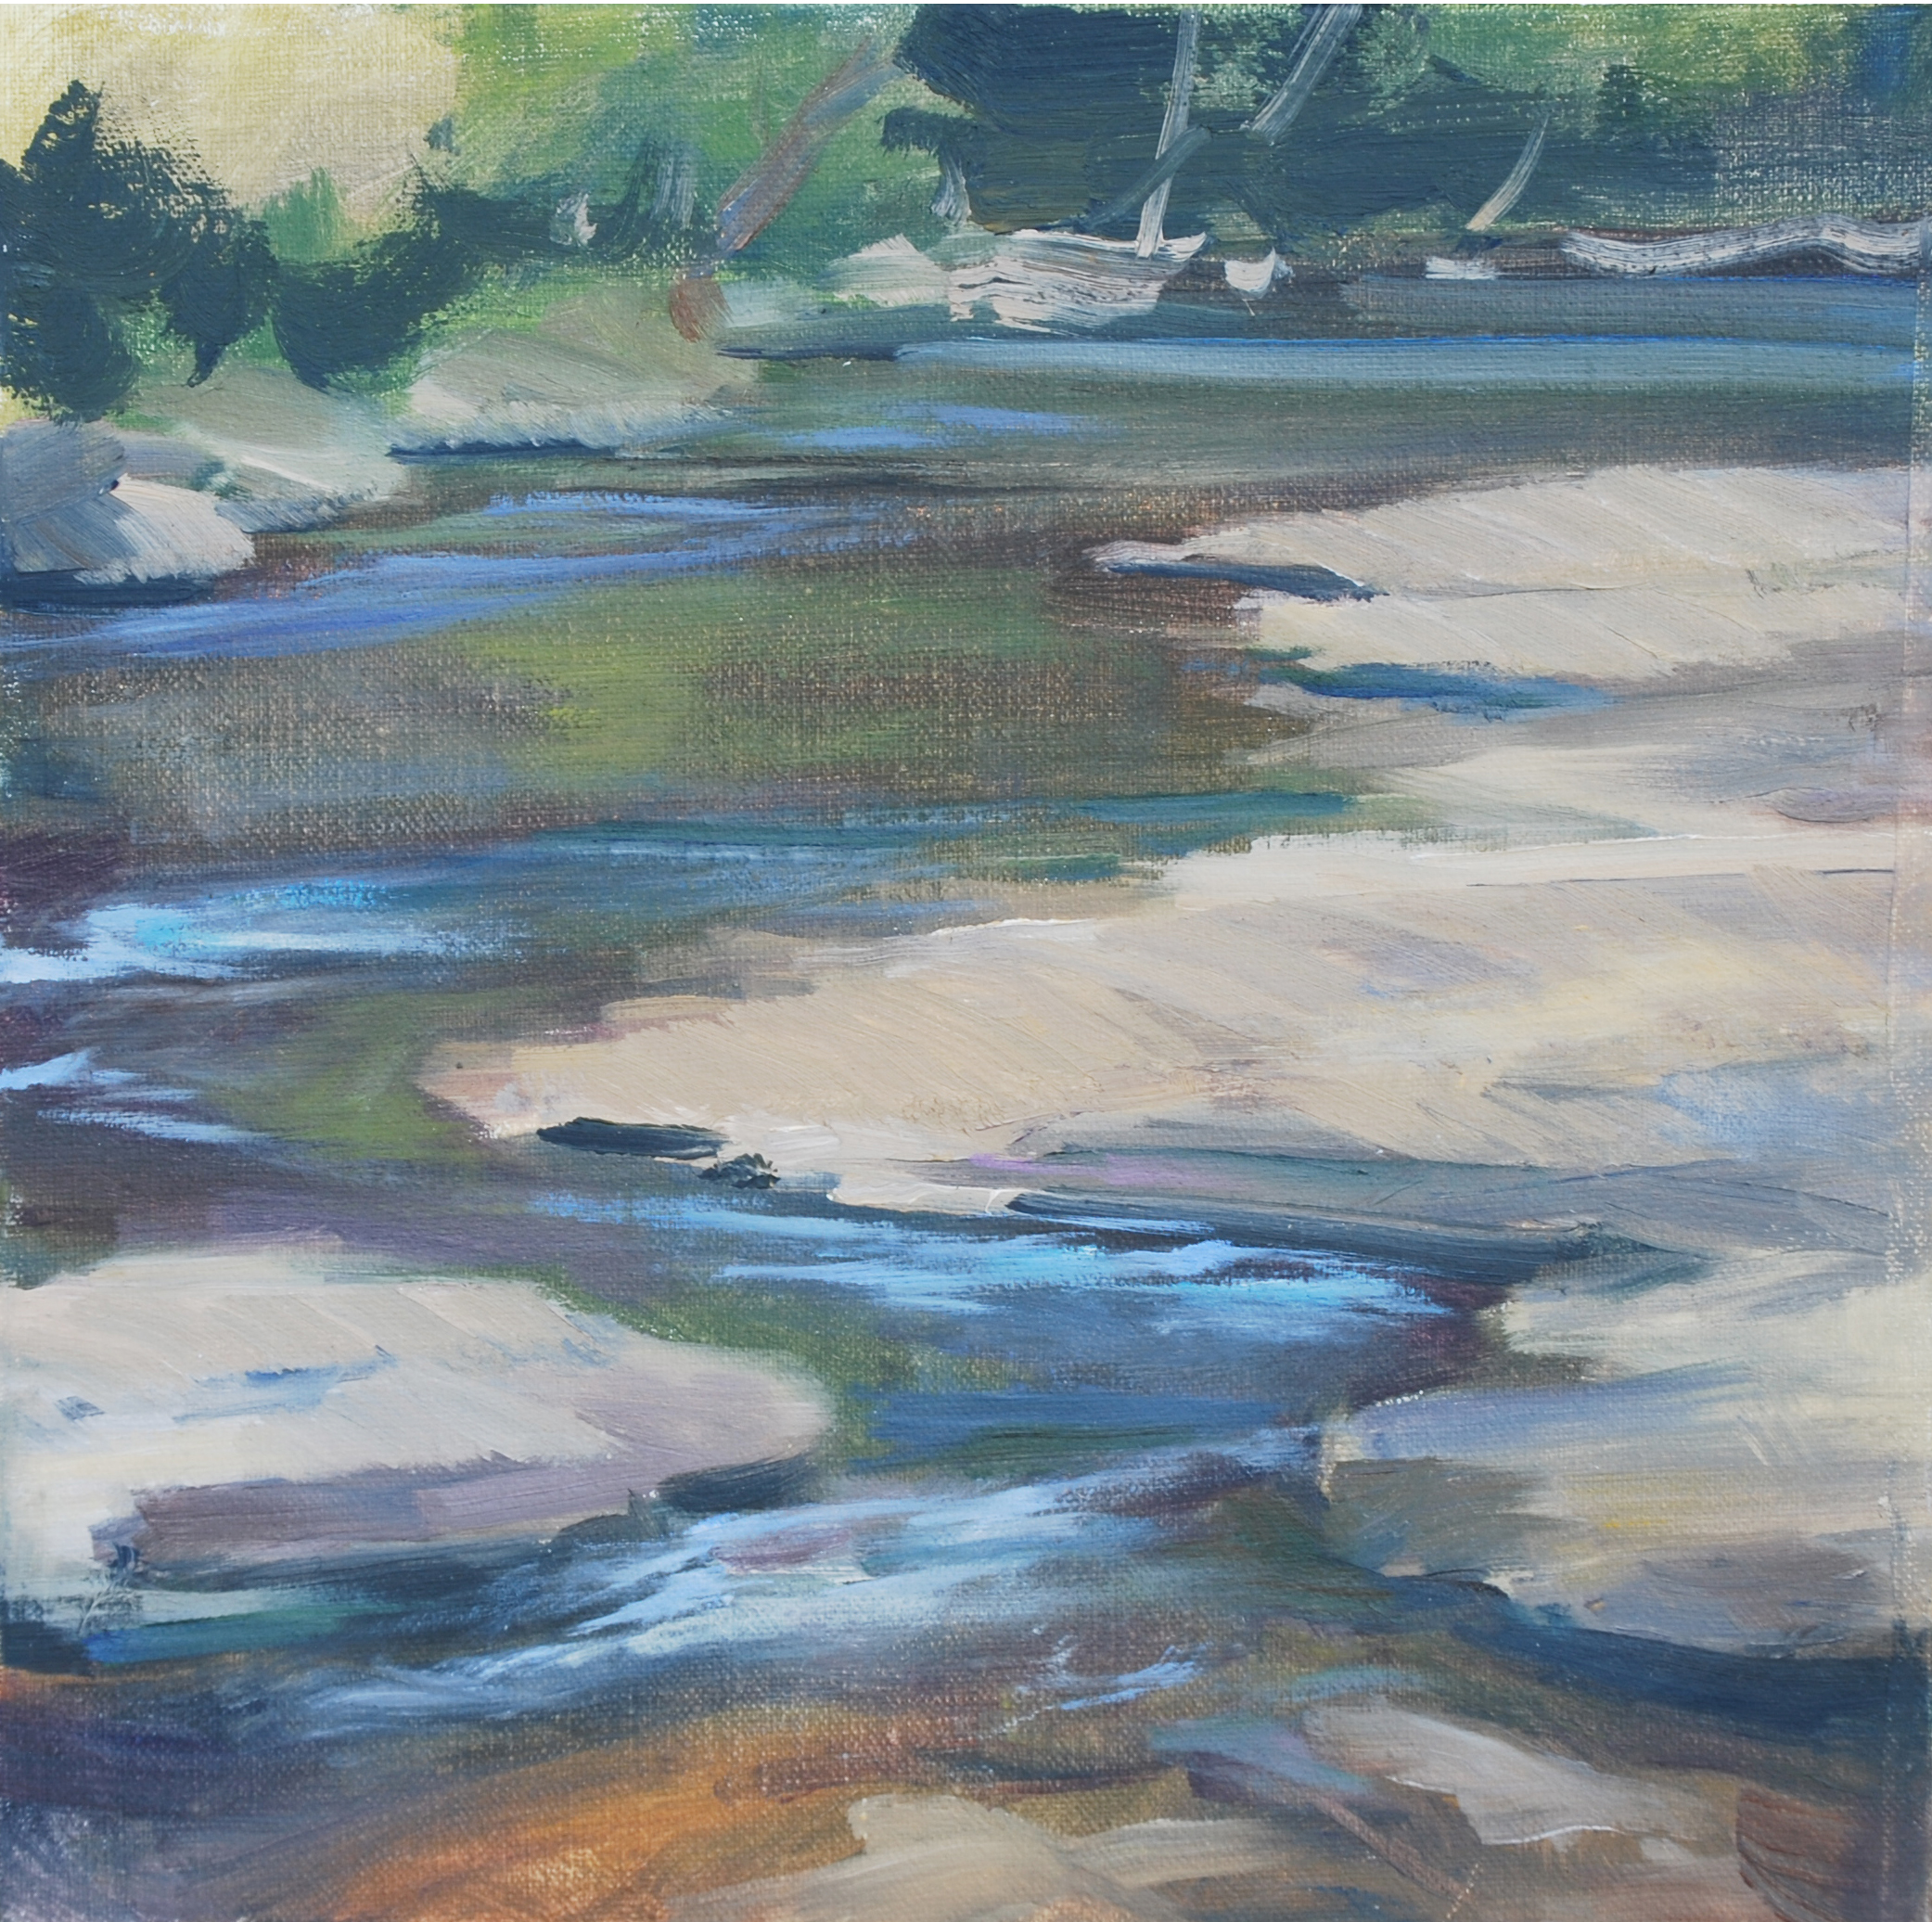 Belle Meade Creek 8x8 .jpg